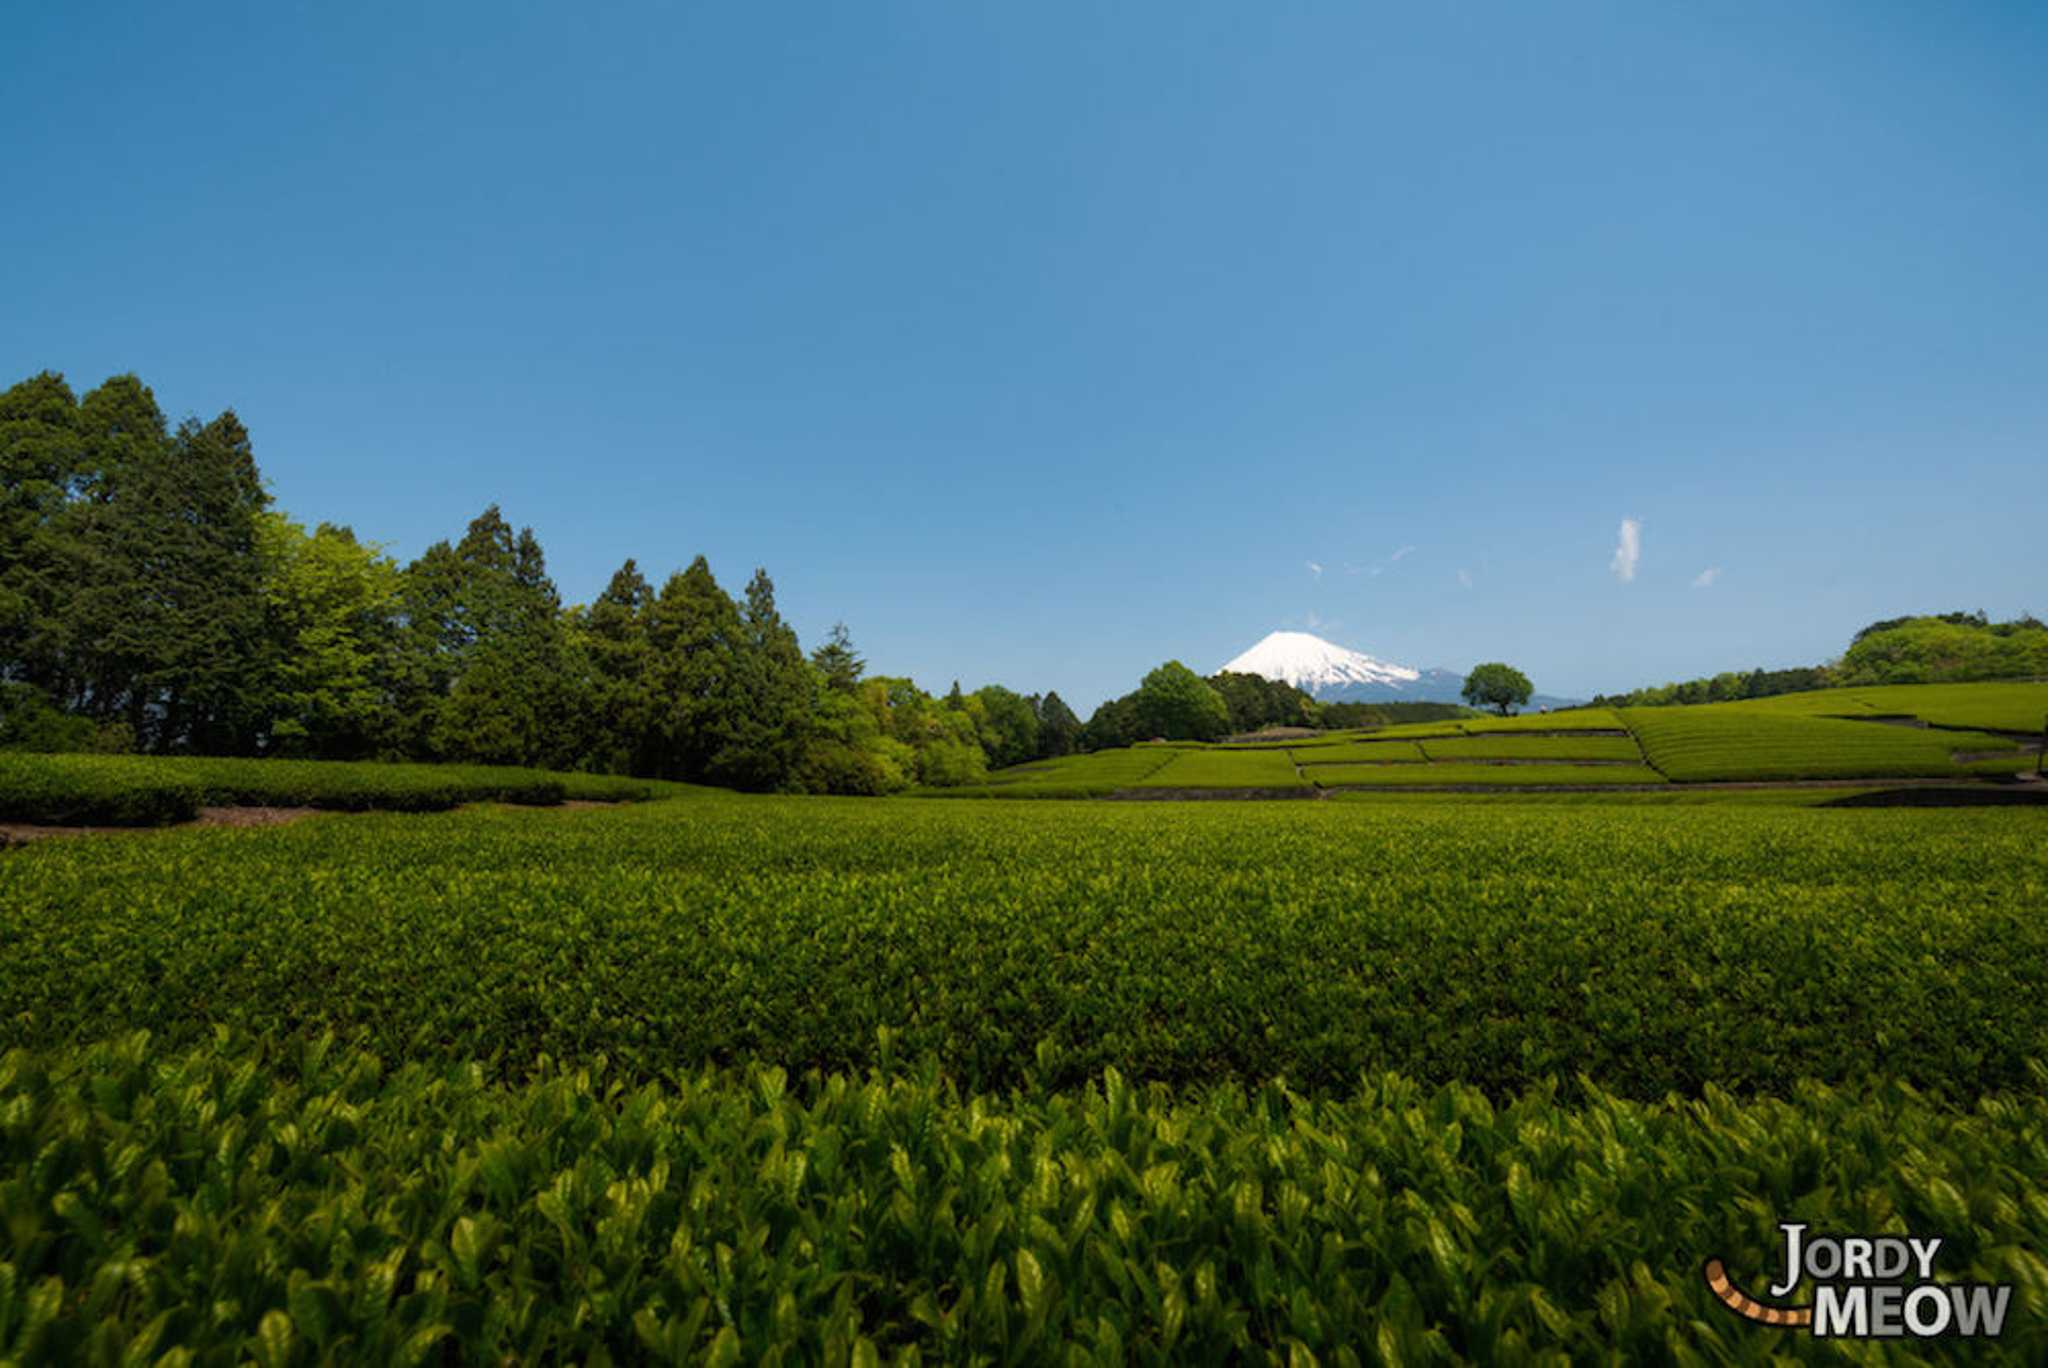 Shizuoka accounts for 45% of Japan's overall tea production, and the prefecture is at the leading-edge of research on the benefits that can be obtained from green tea. Green tea plantations date back to 1241.